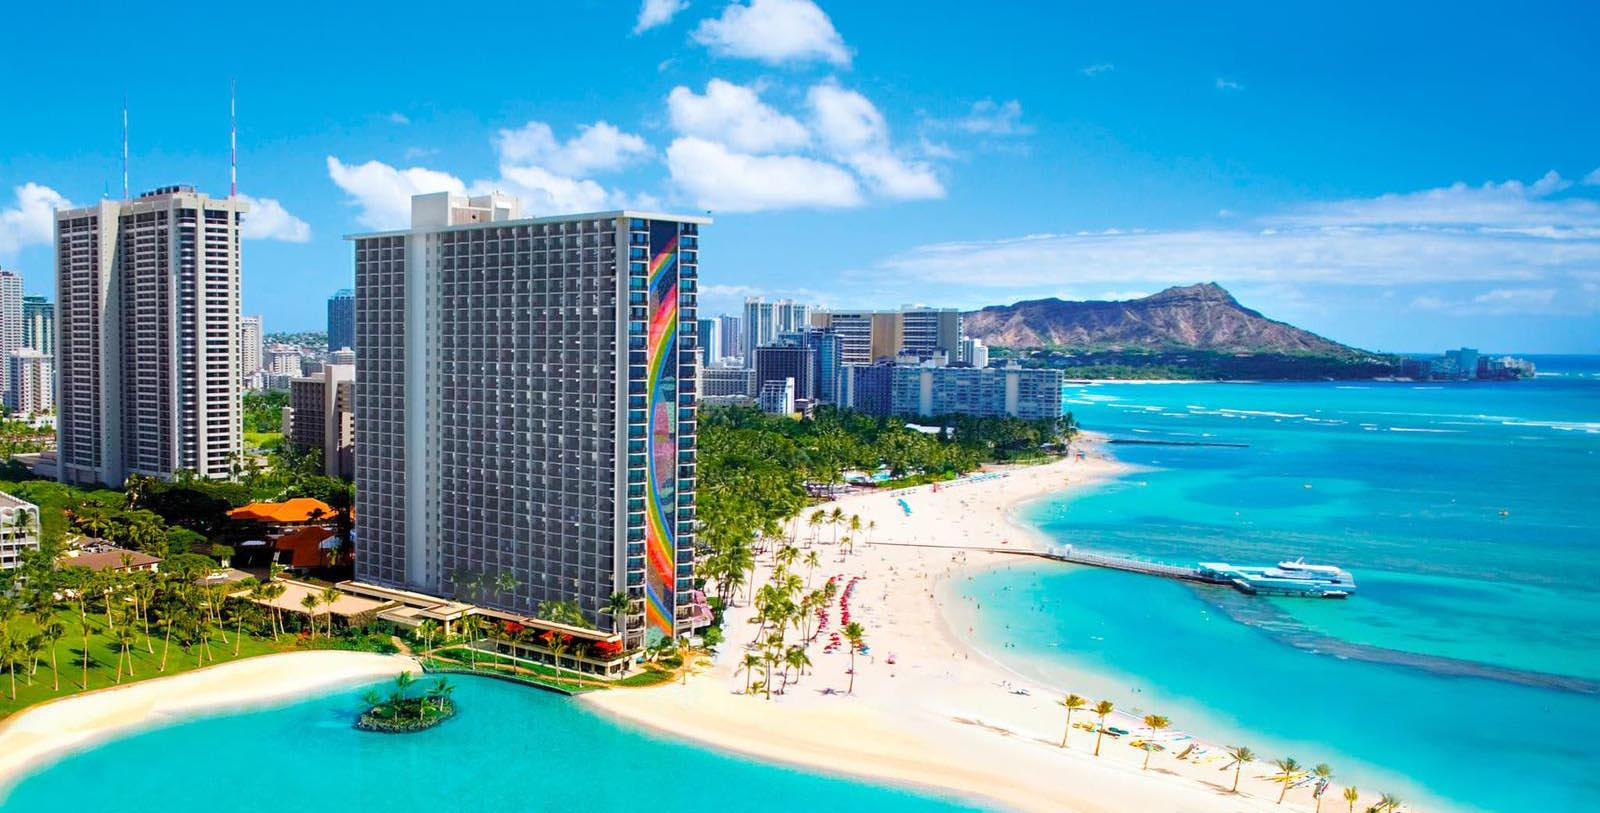 Image of hotel exterior and surrounding area Hilton Hawaiian Village® Waikiki Beach Resort, 1957, Member of Historic Hotels of America, in Honolulu, Hawaii, Overview